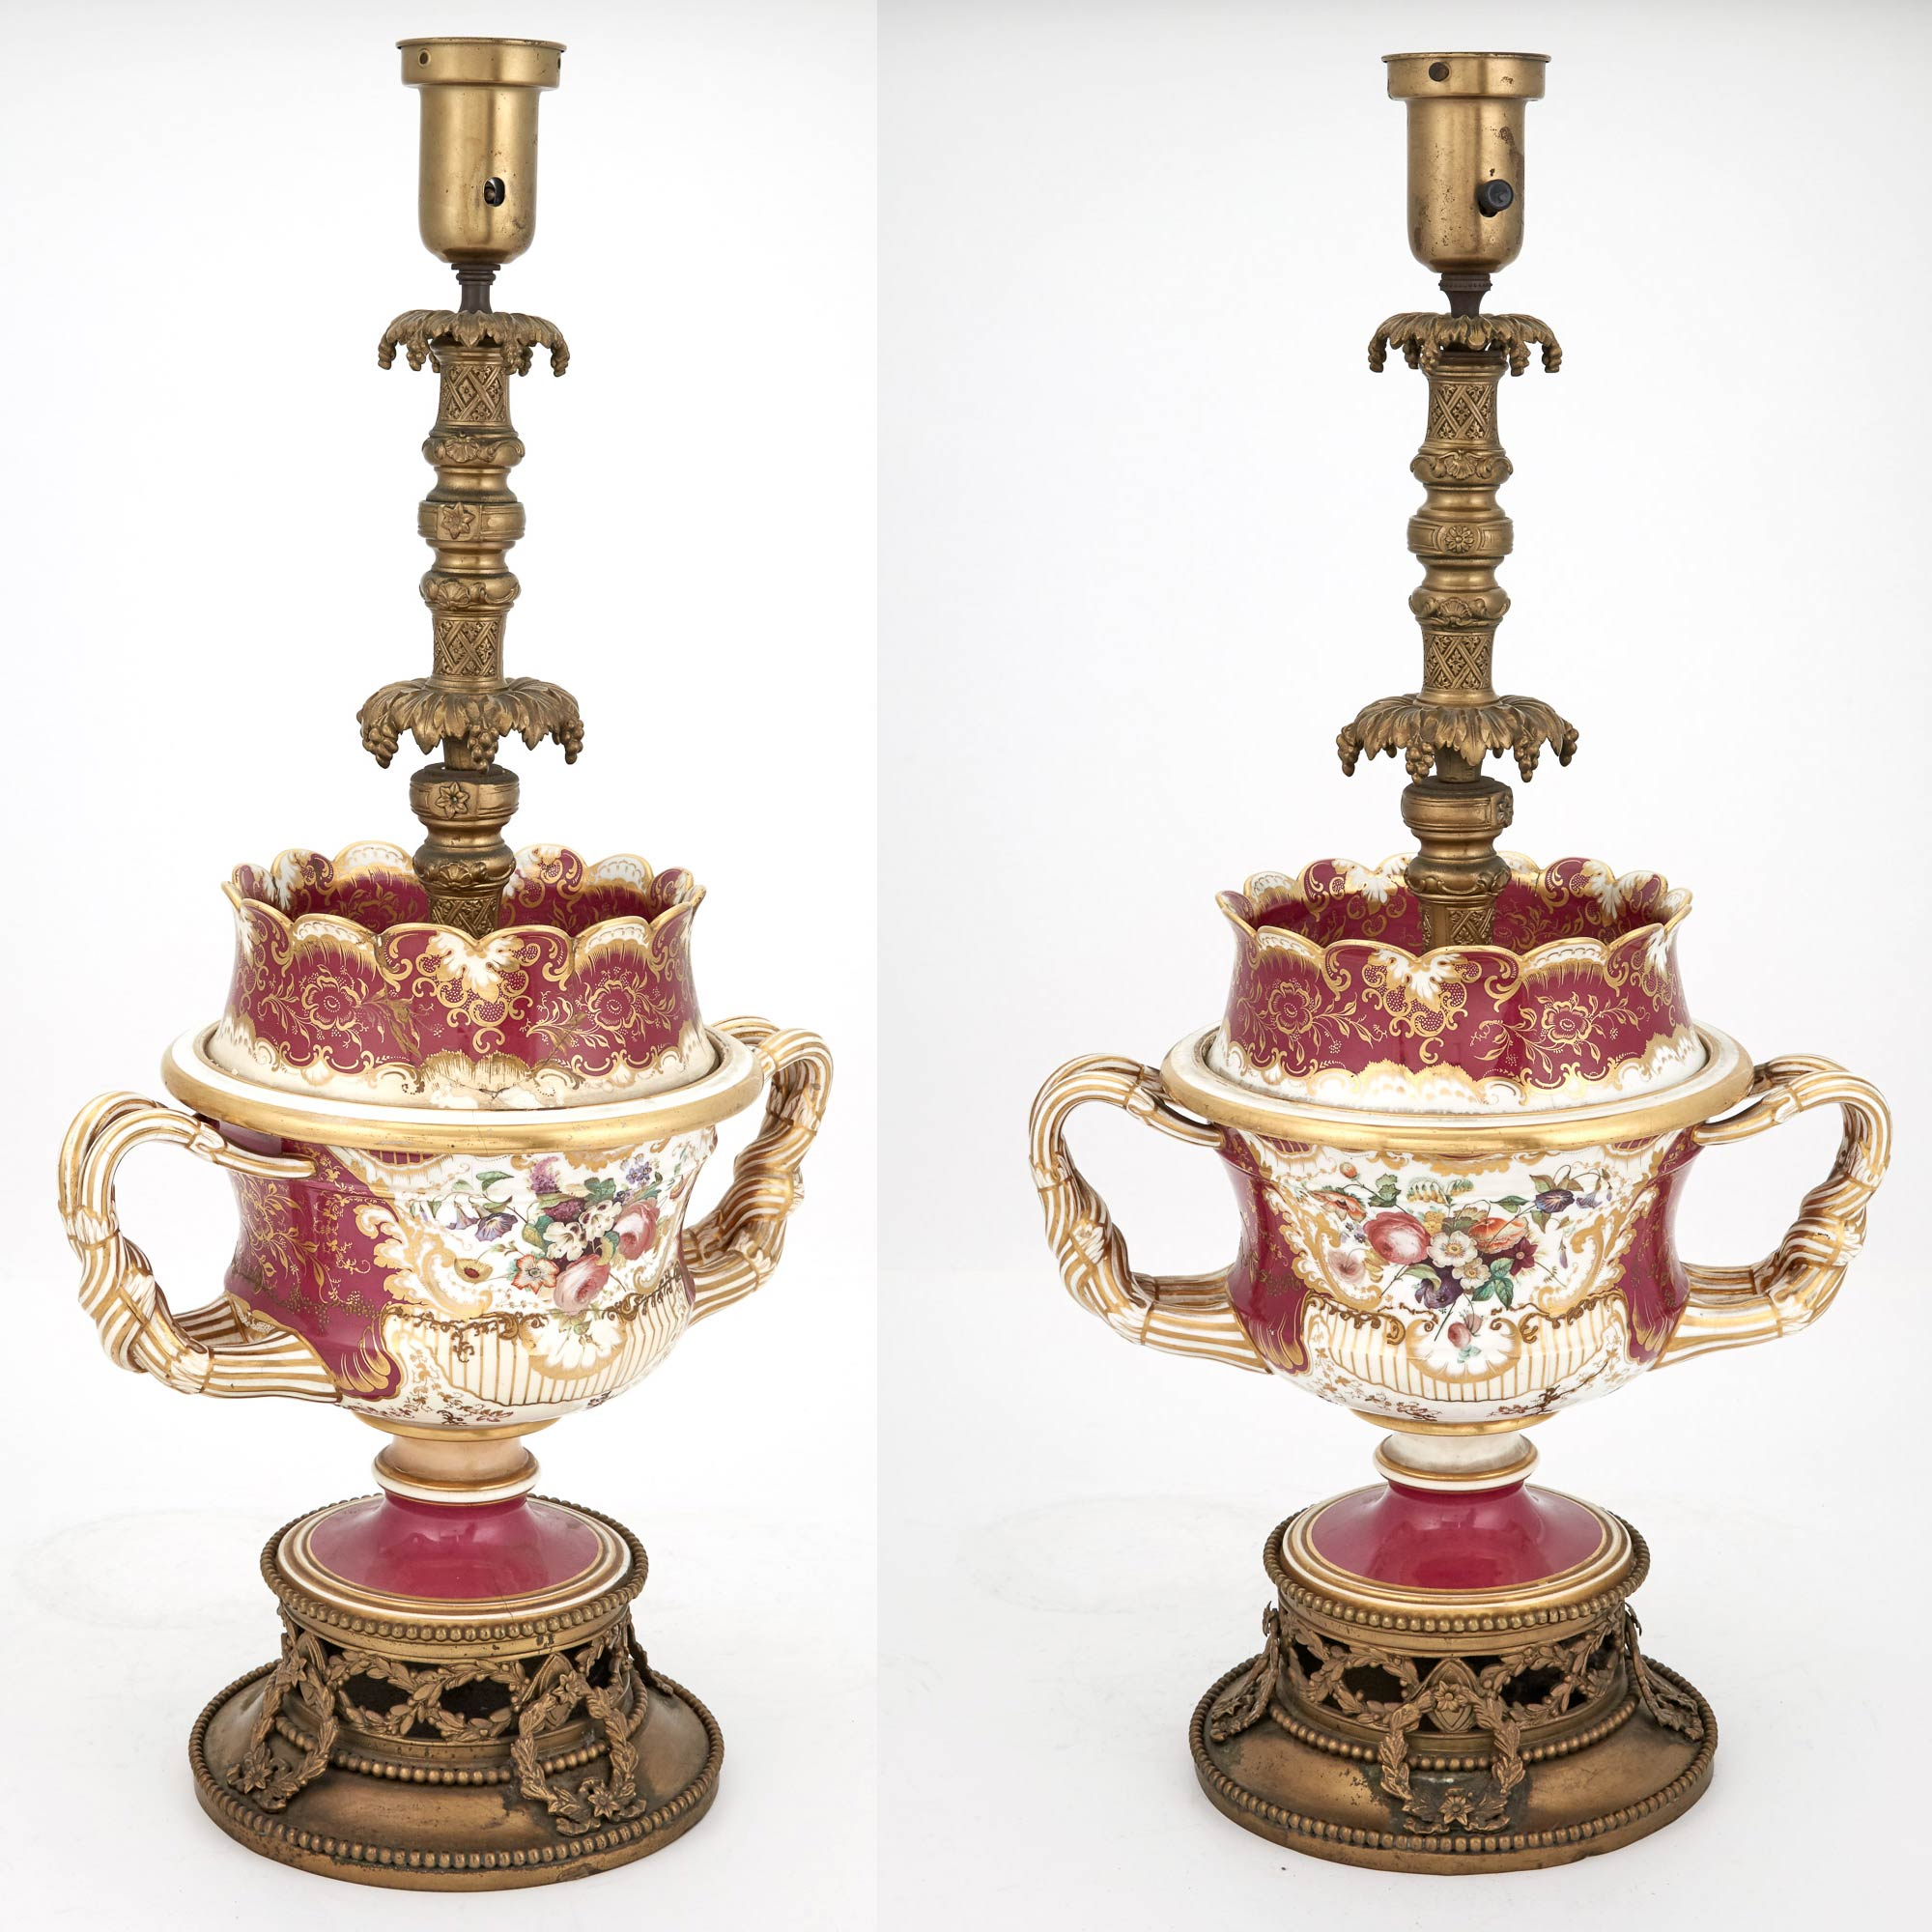 Lot image - Pair of Gilt-Metal Mounted English Porcelain Fruit Coolers as Lamps